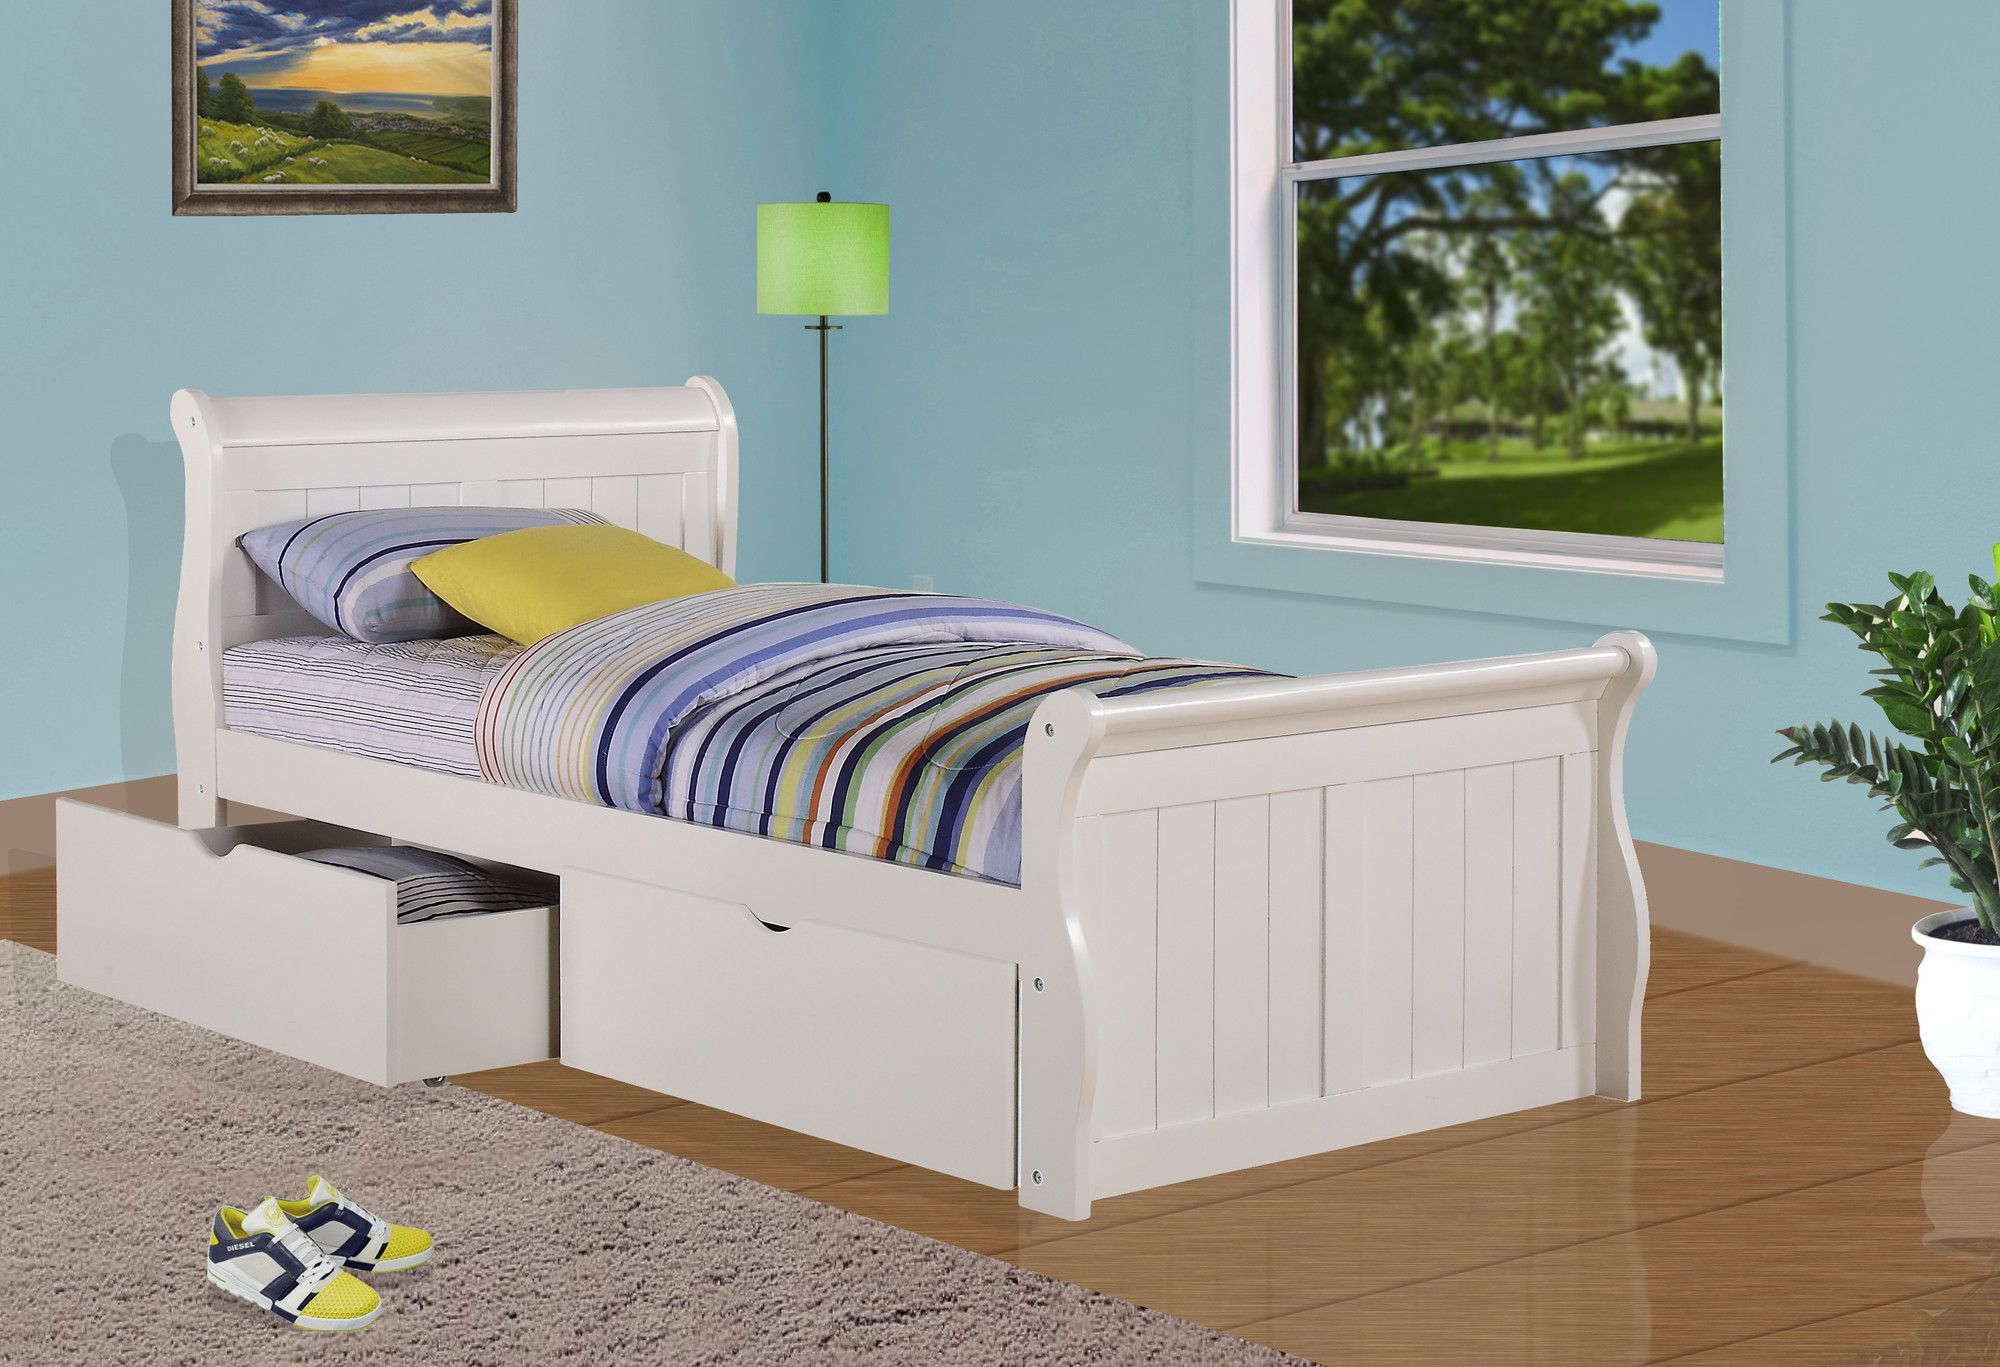 Sleigh Bed with Dual Underbed Drawers | Products | Pinterest